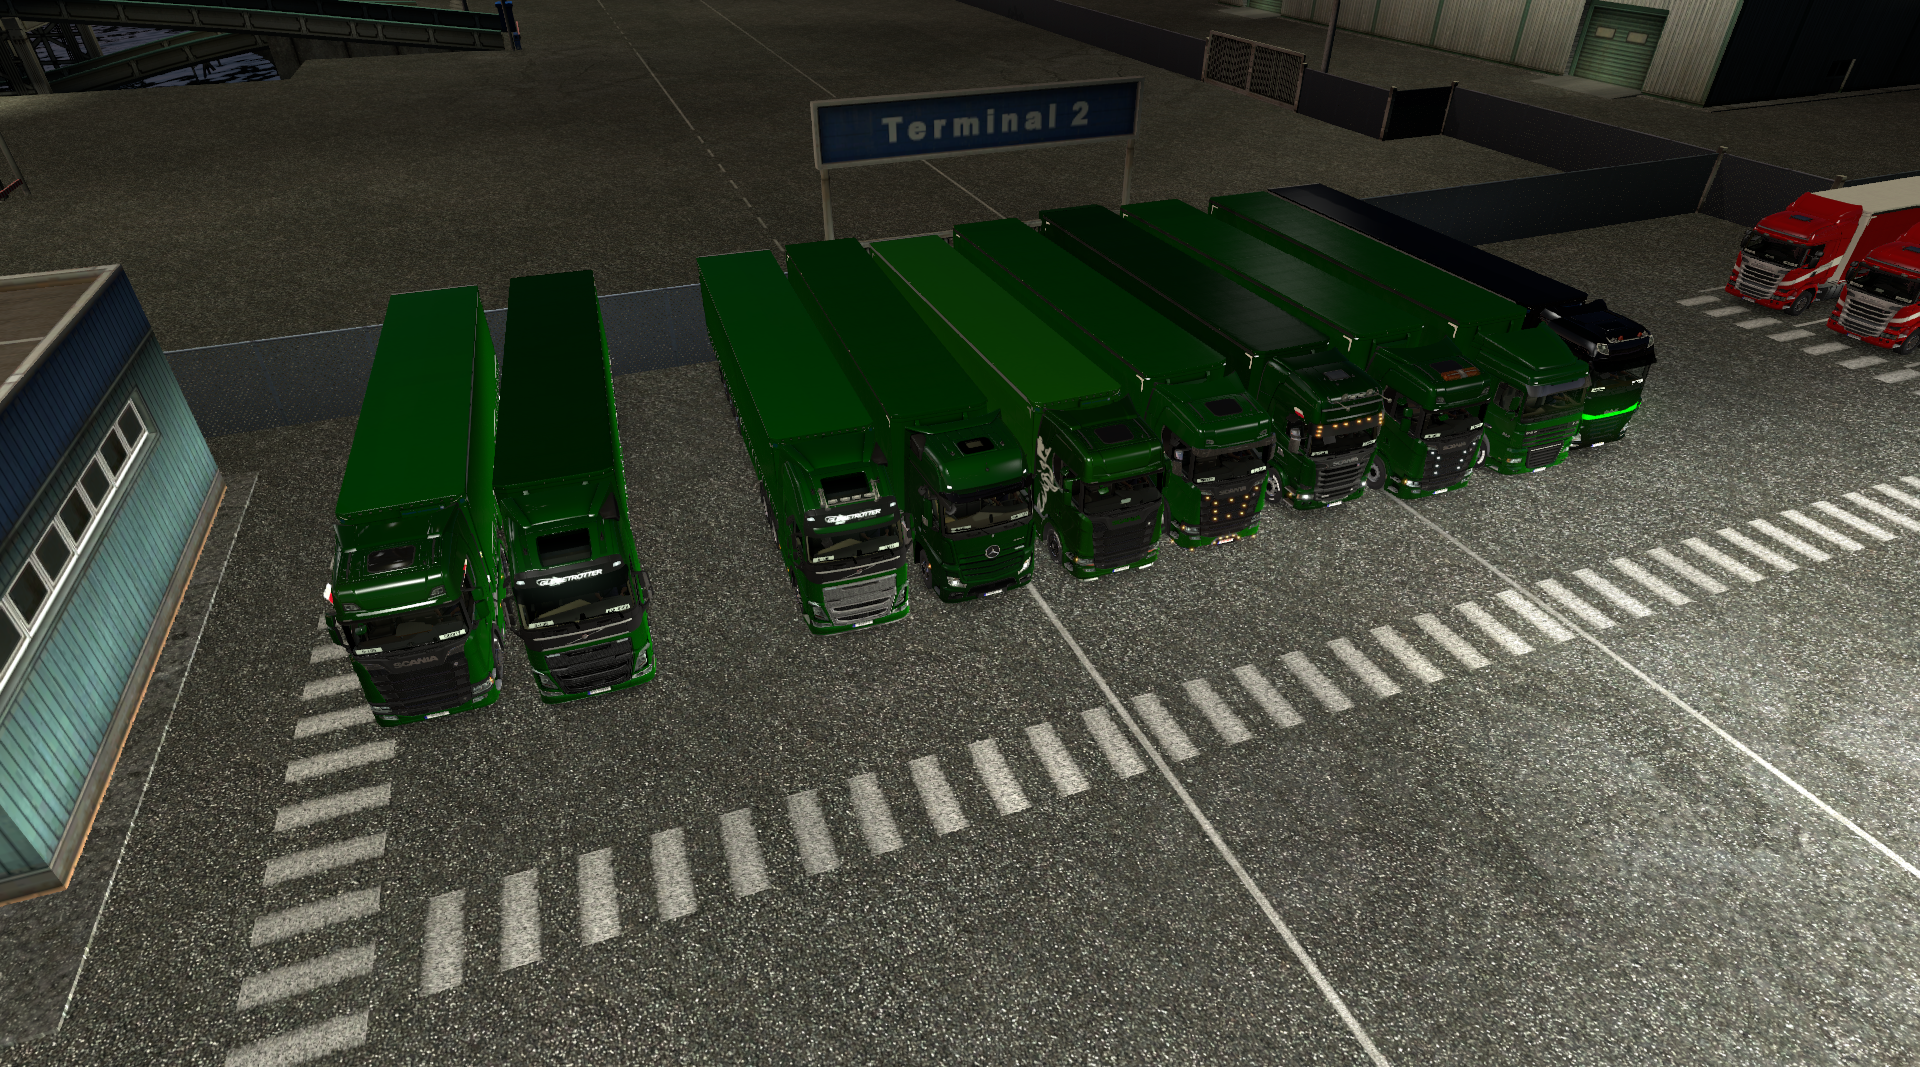 ets2_20190406_204057_00.png